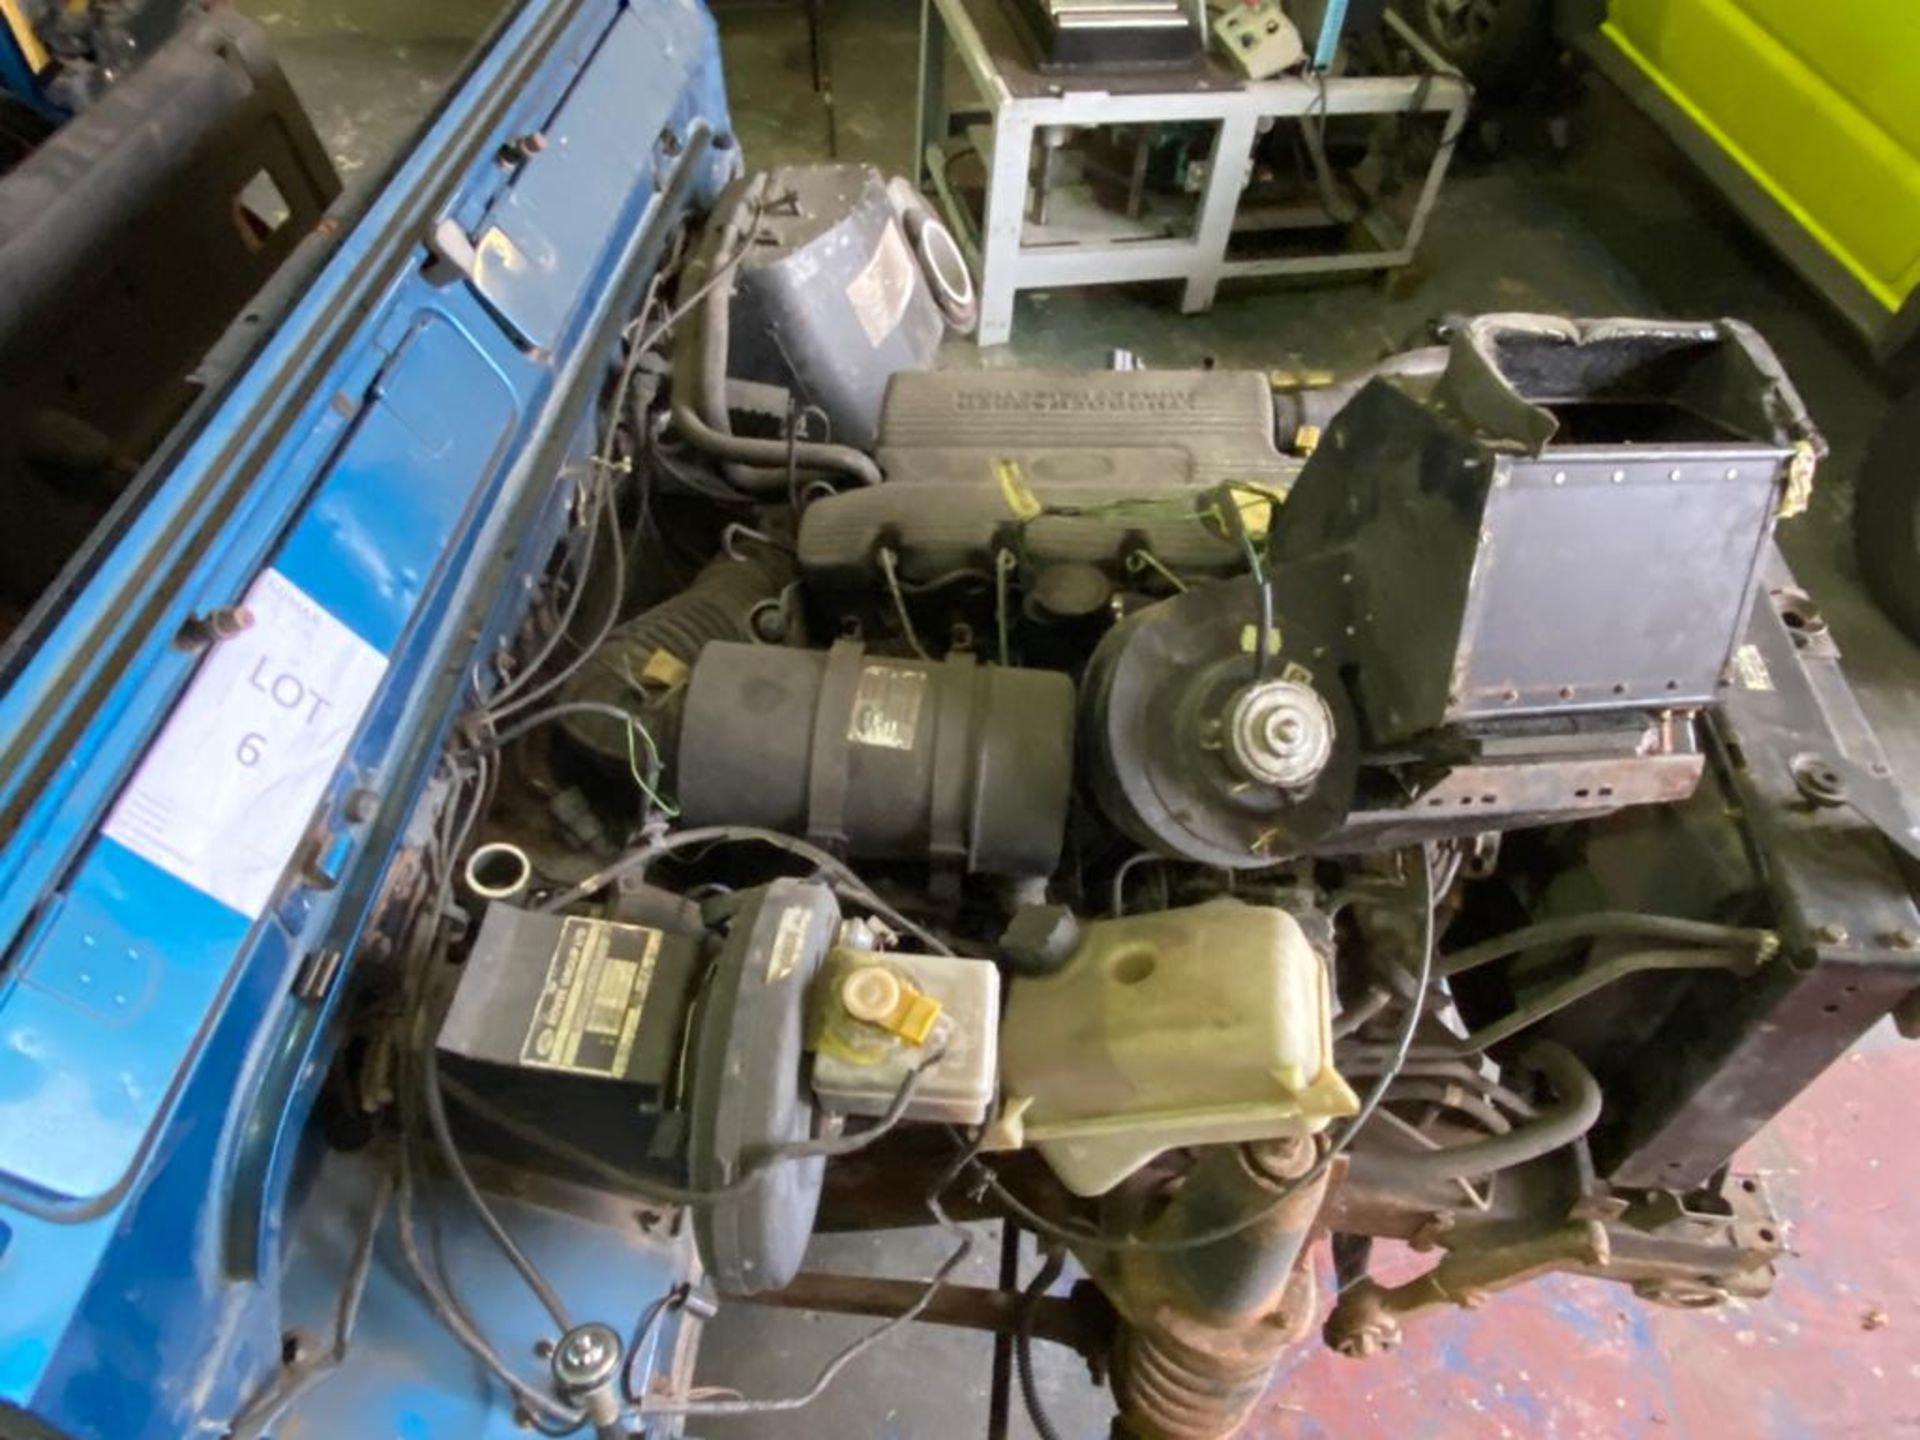 Land Rover 110 County, 300 TDI Engine Appears Mostly Complete - No Bumper, Bonnet, Glass etc As - Image 16 of 26